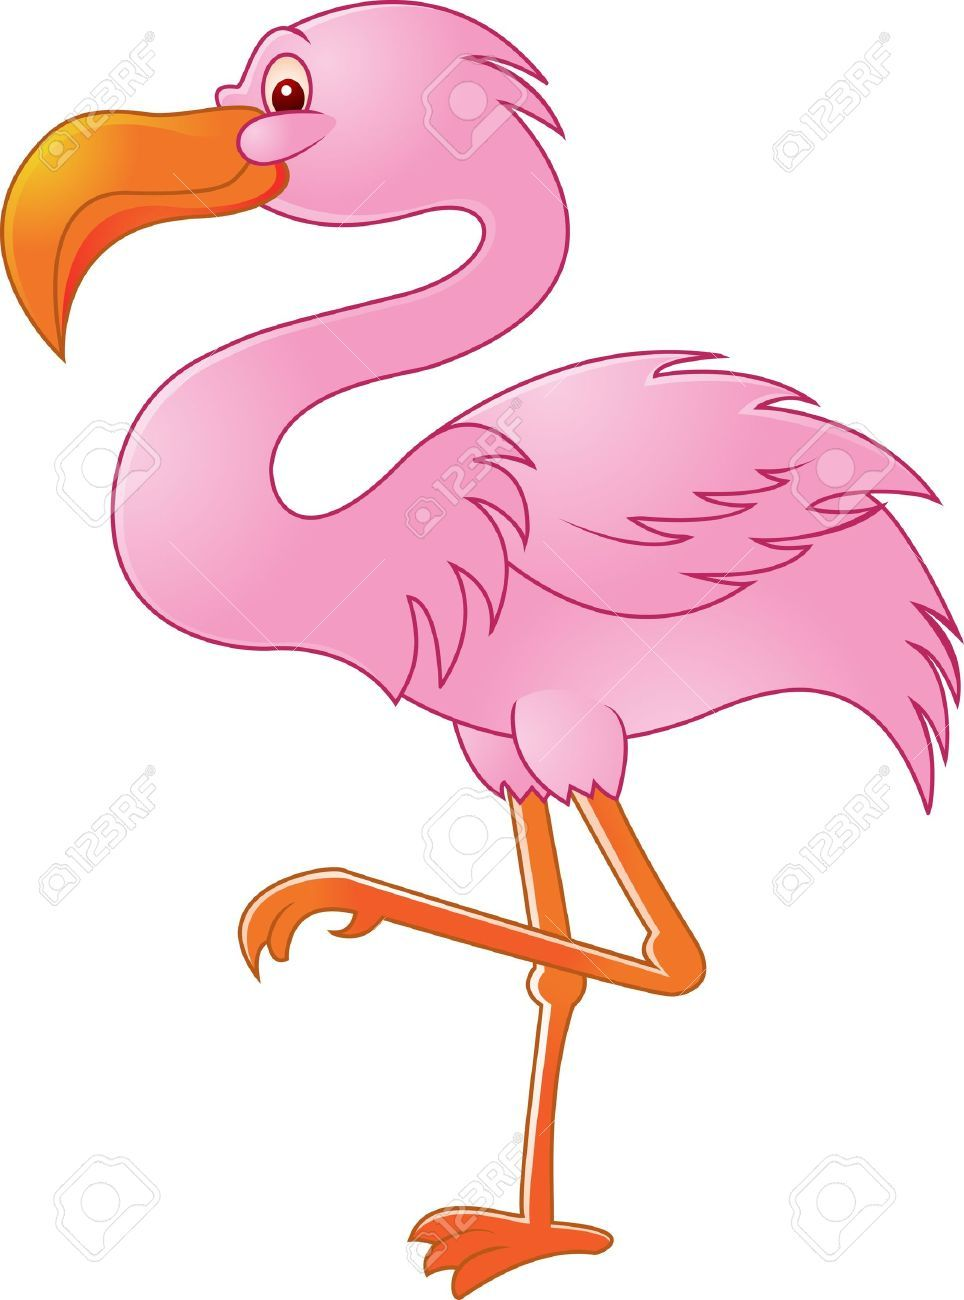 pink flamingos cartoon - Google Search | Flamingos ...